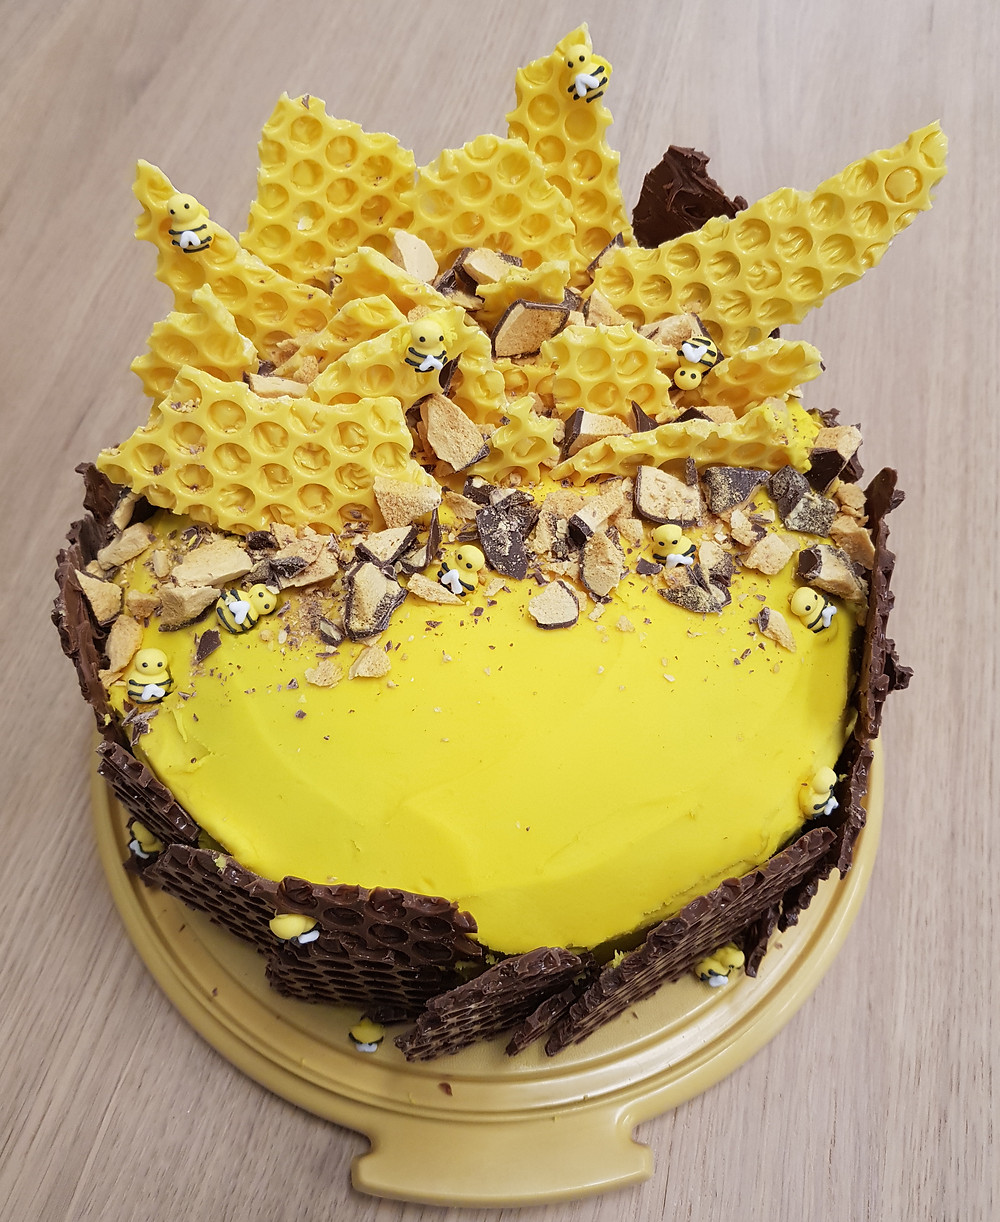 A yellow cake decorated with honeycomb and frosting bees.